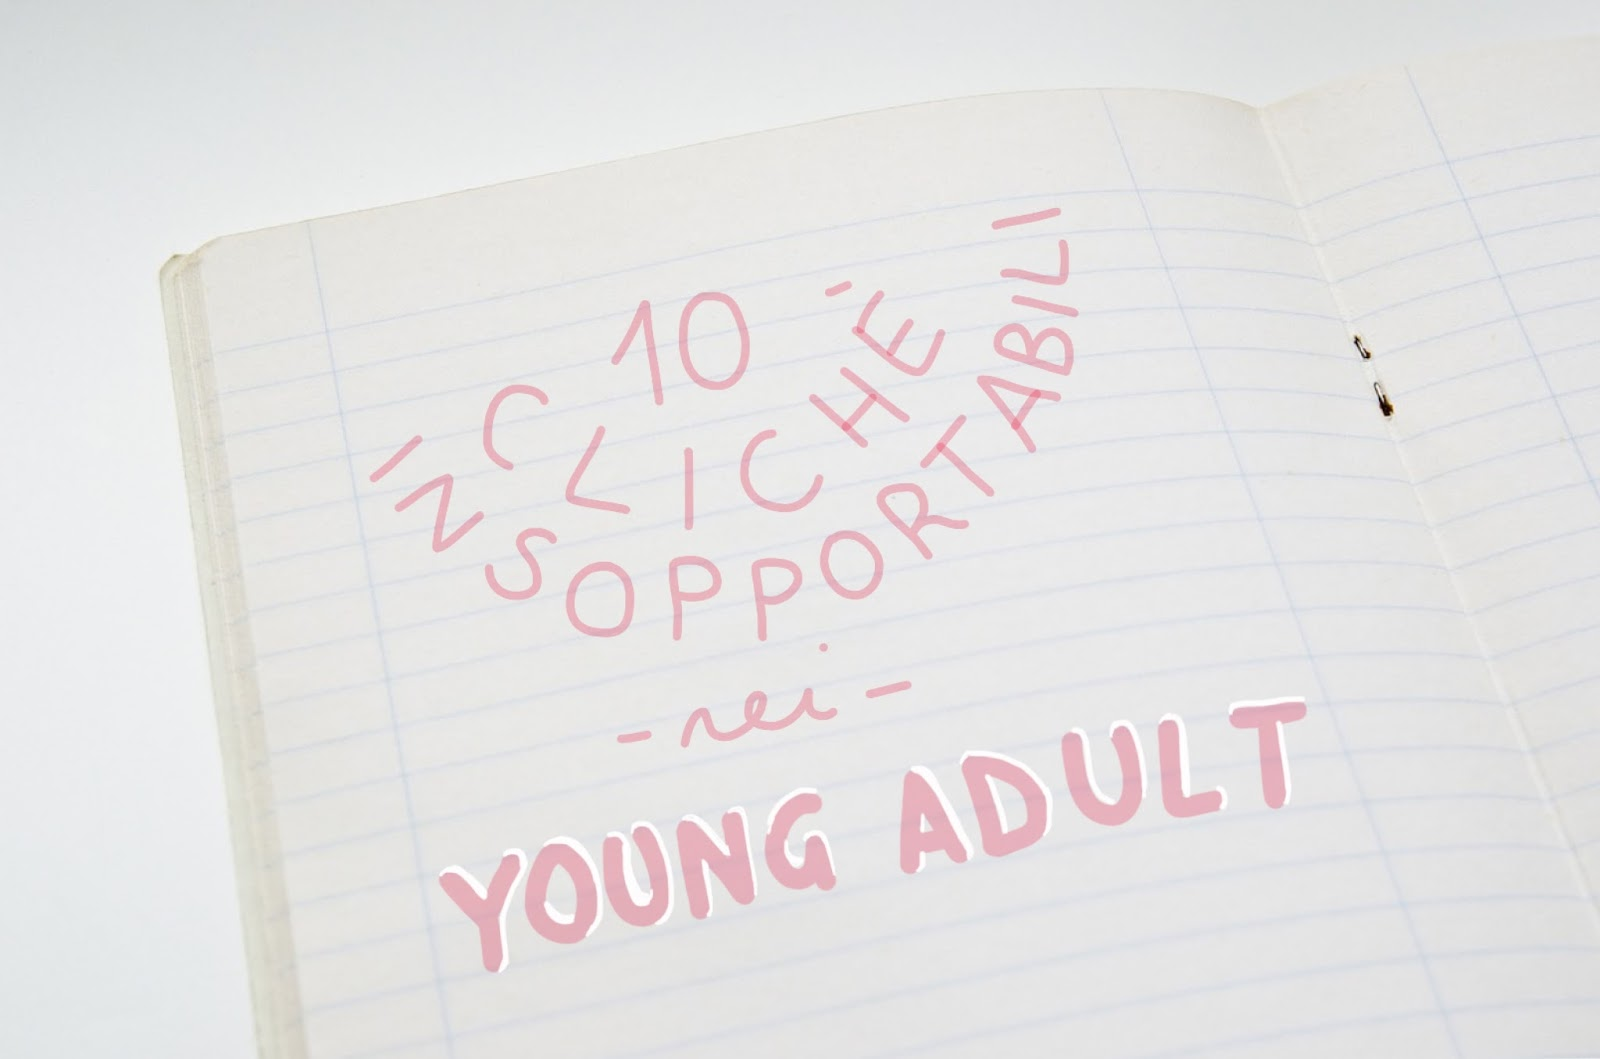 i 10 stereotipi nei young adult